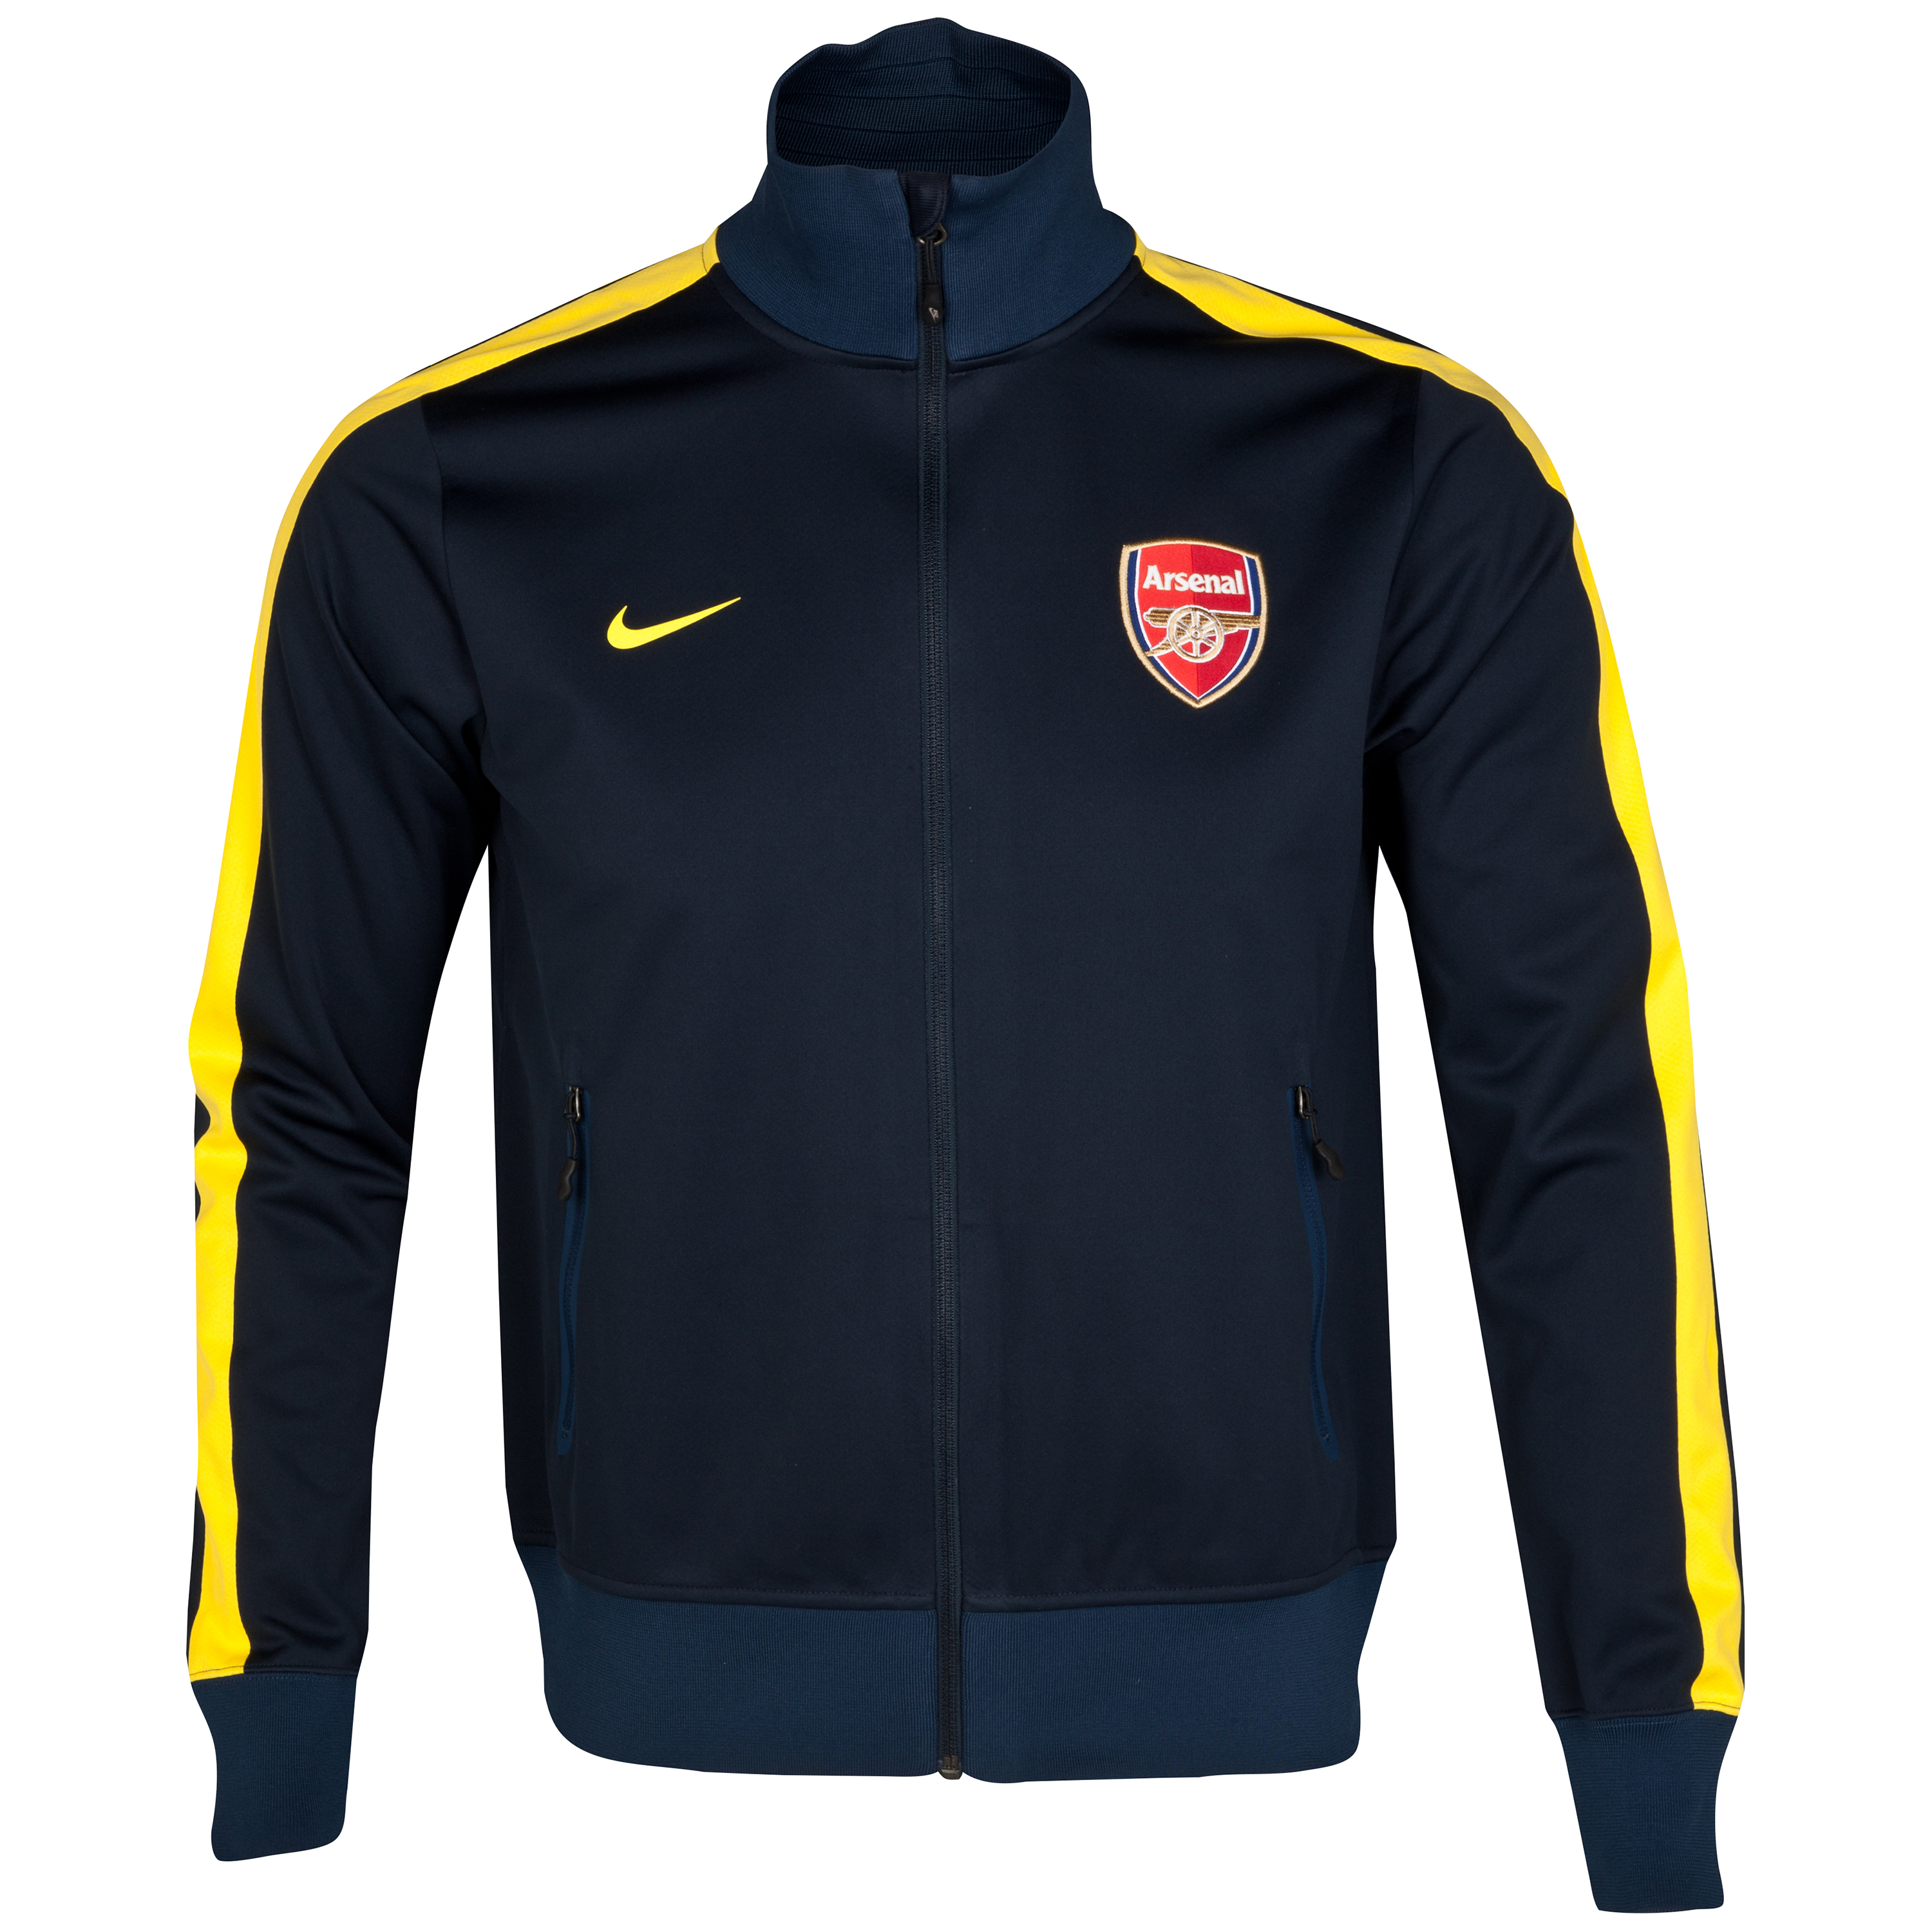 Arsenal Authentic N98 Jacket - Dark Obsidian/Tour Yellow